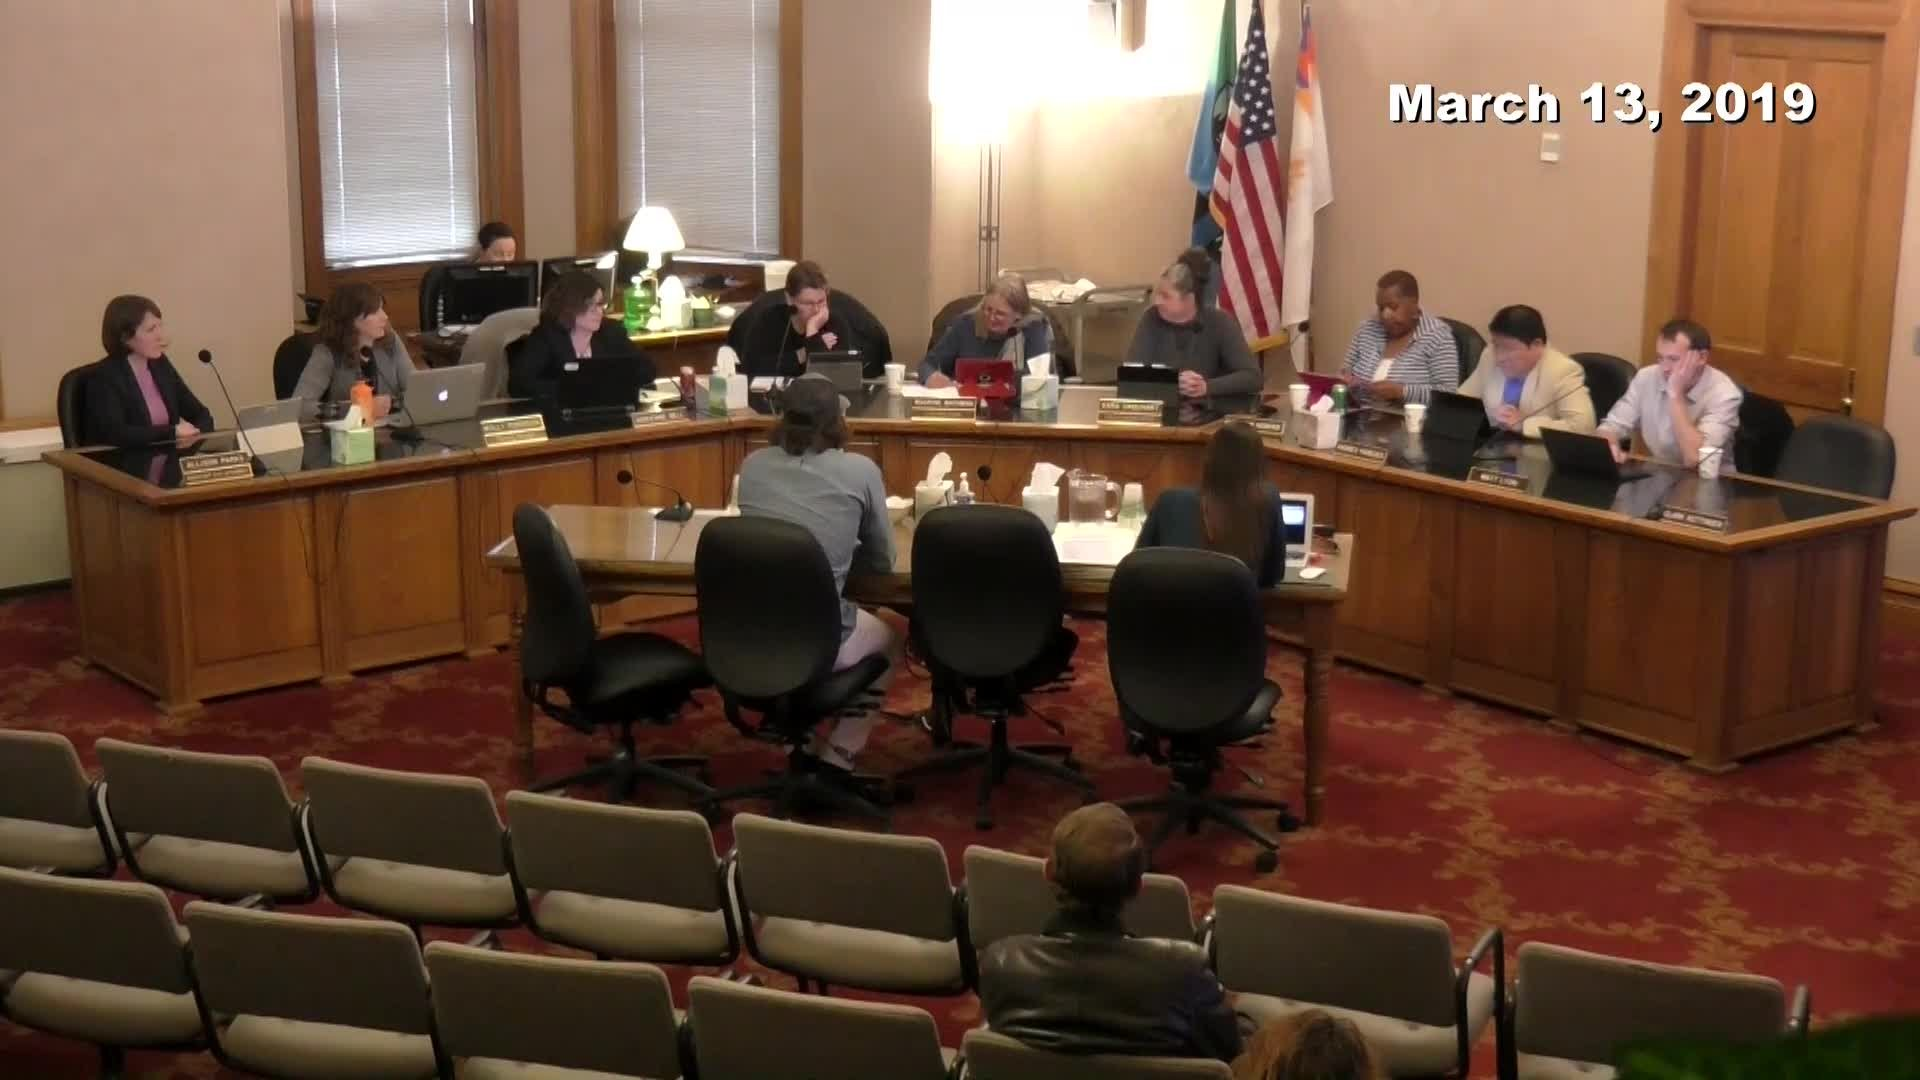 Planning Commission Meeting - 03/13/2019